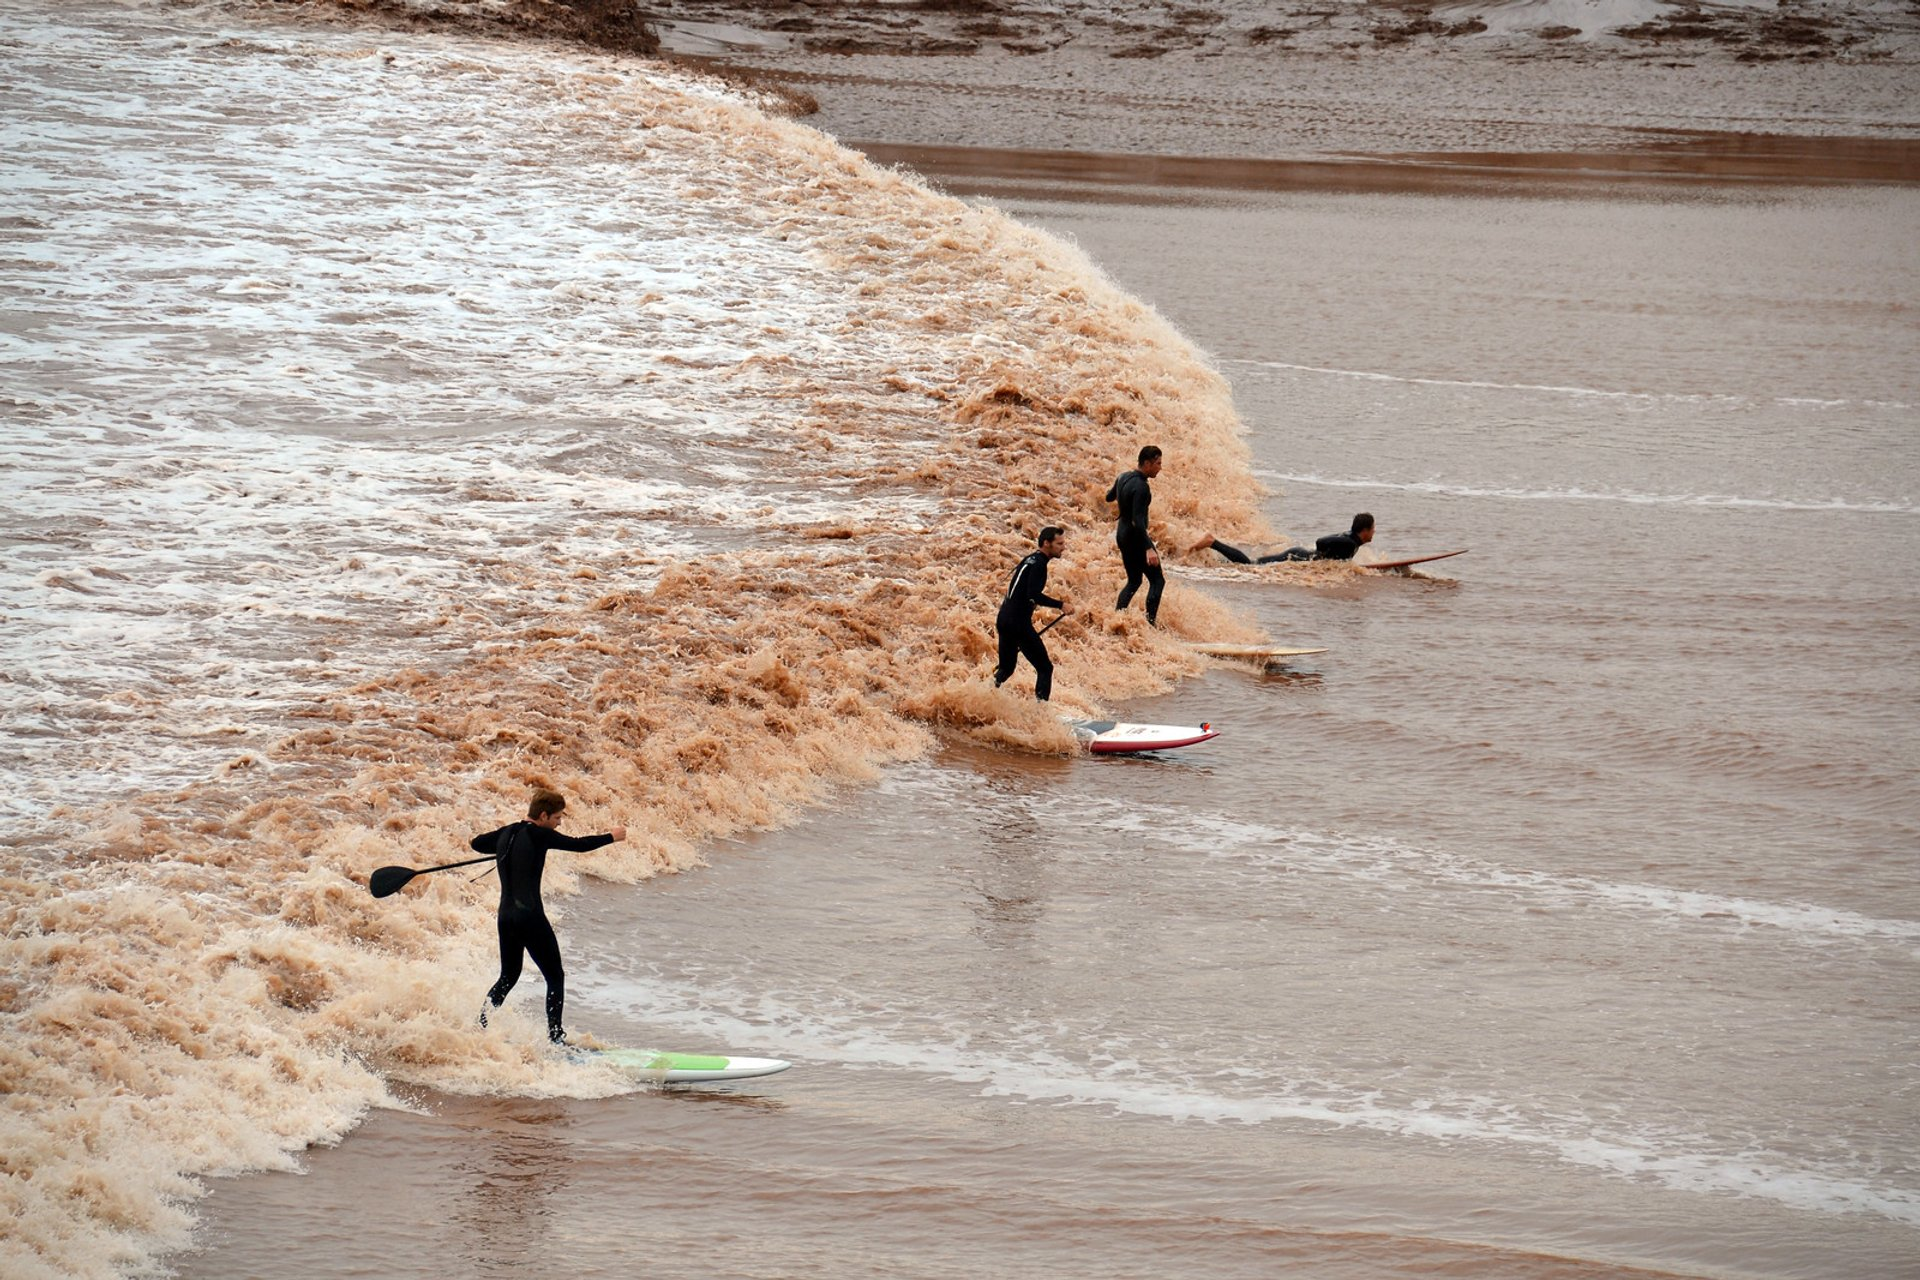 Moncton Tidal Bore Surfing & Viewing in New Brunswick 2020 - Best Time